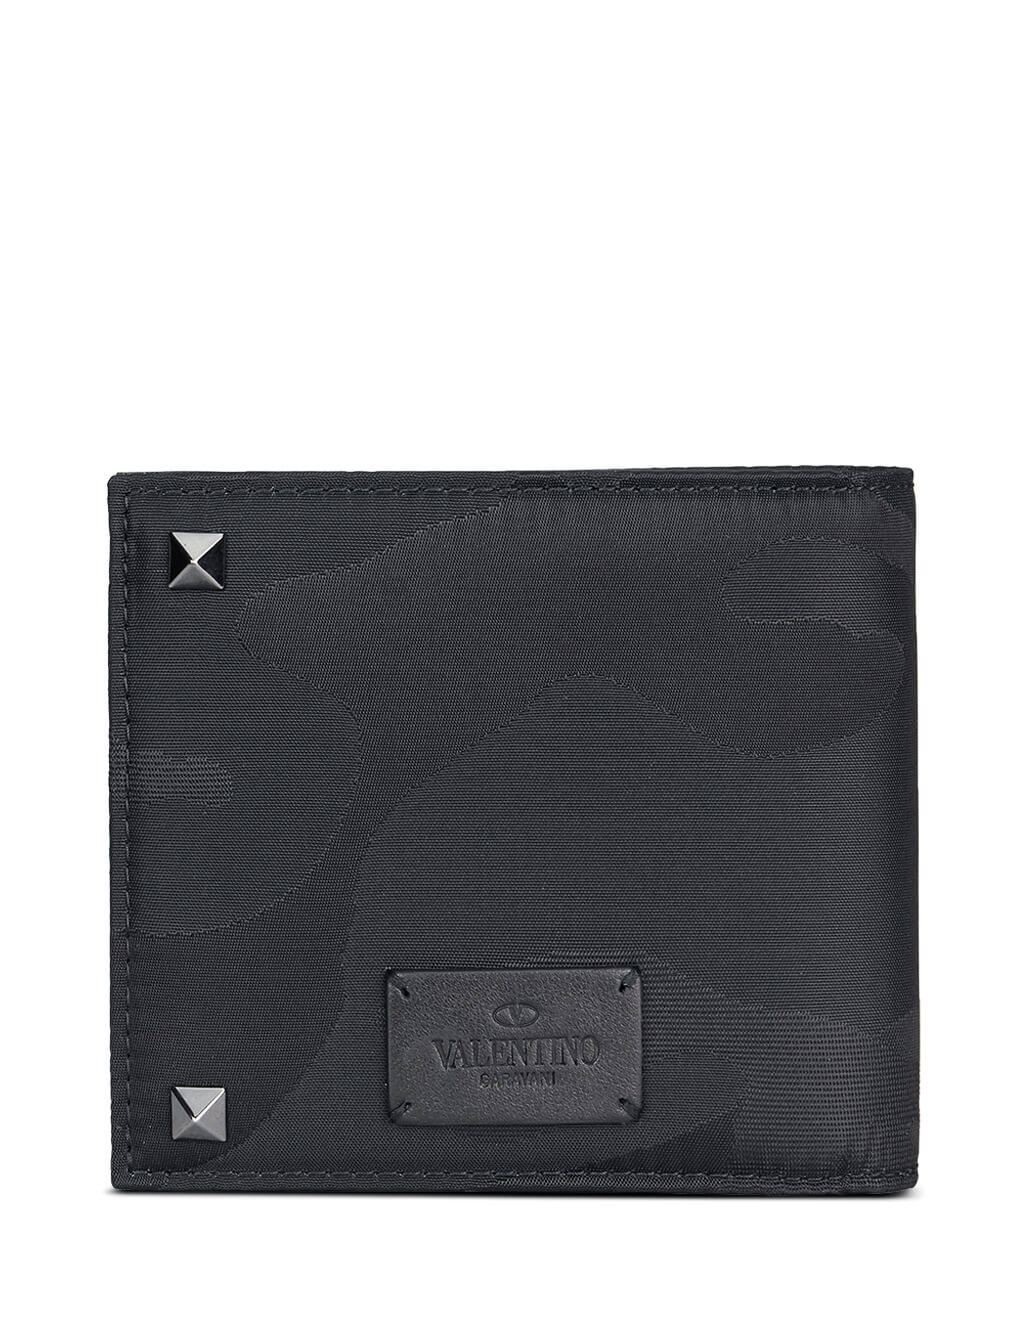 Valentino Men's Giulio Fashion Black Camouflage Billfold Wallet NY2P0654NAI0NO